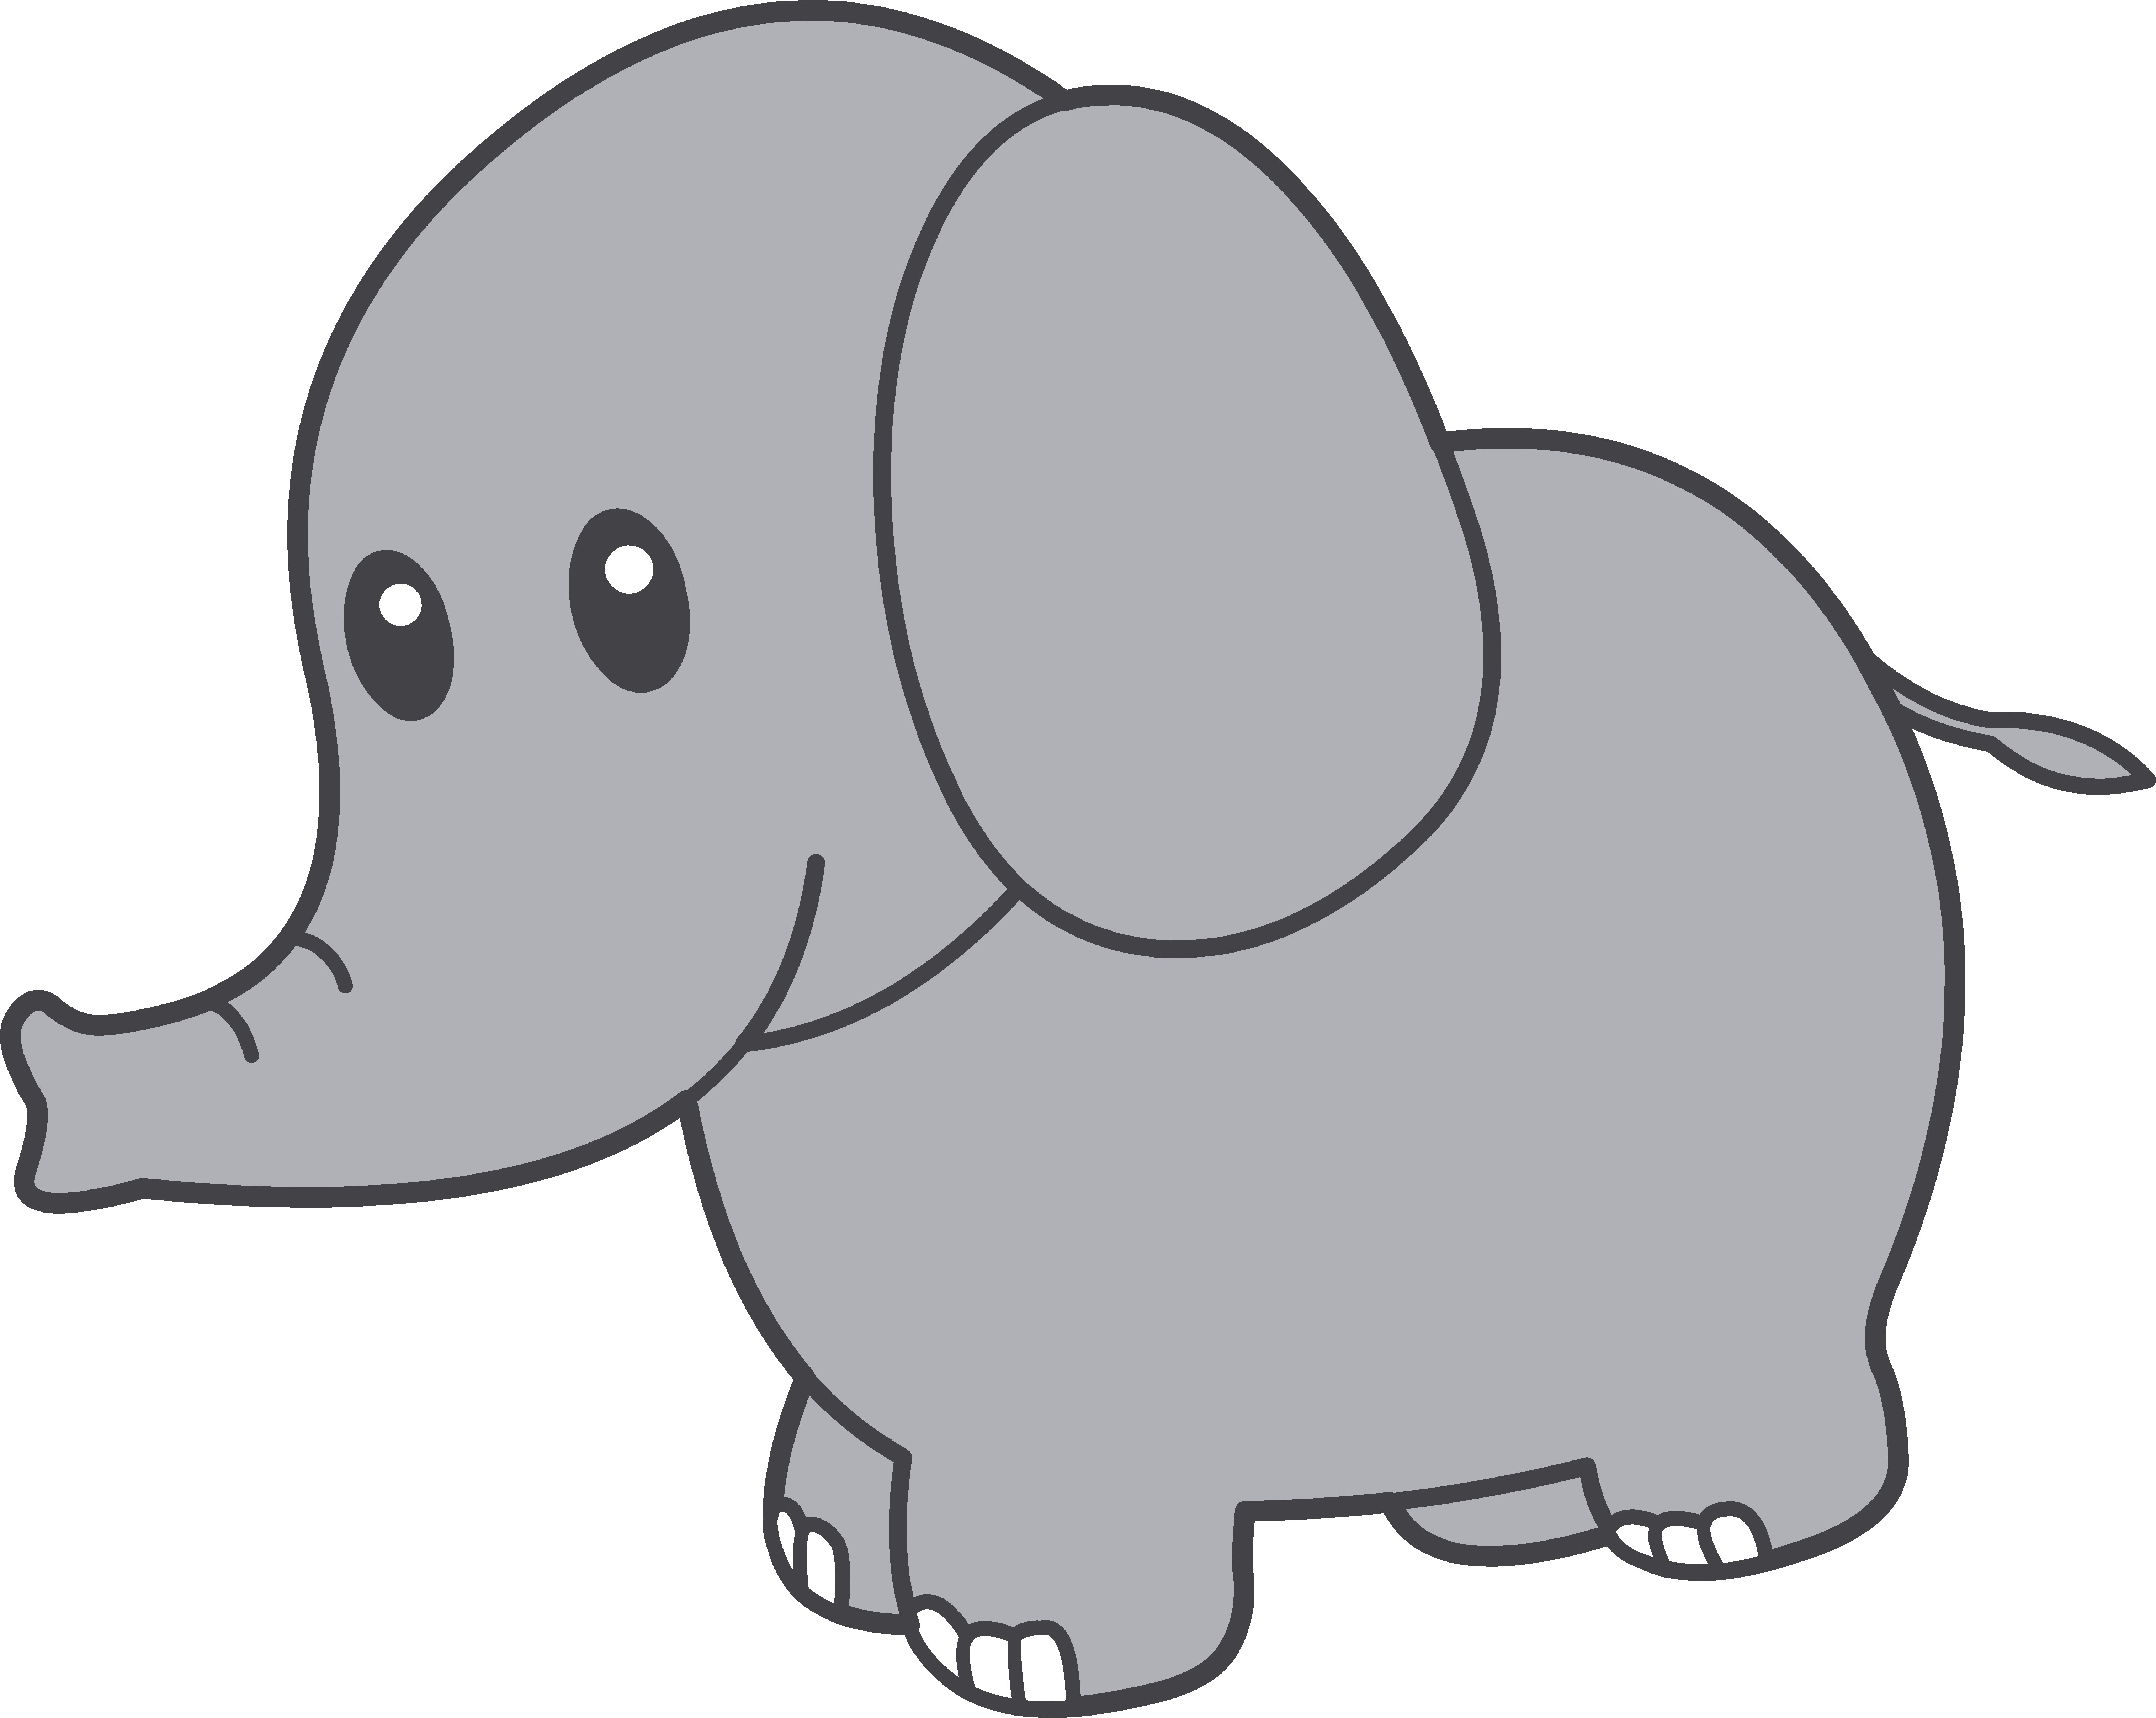 Cute elephant clipart free clipart images.